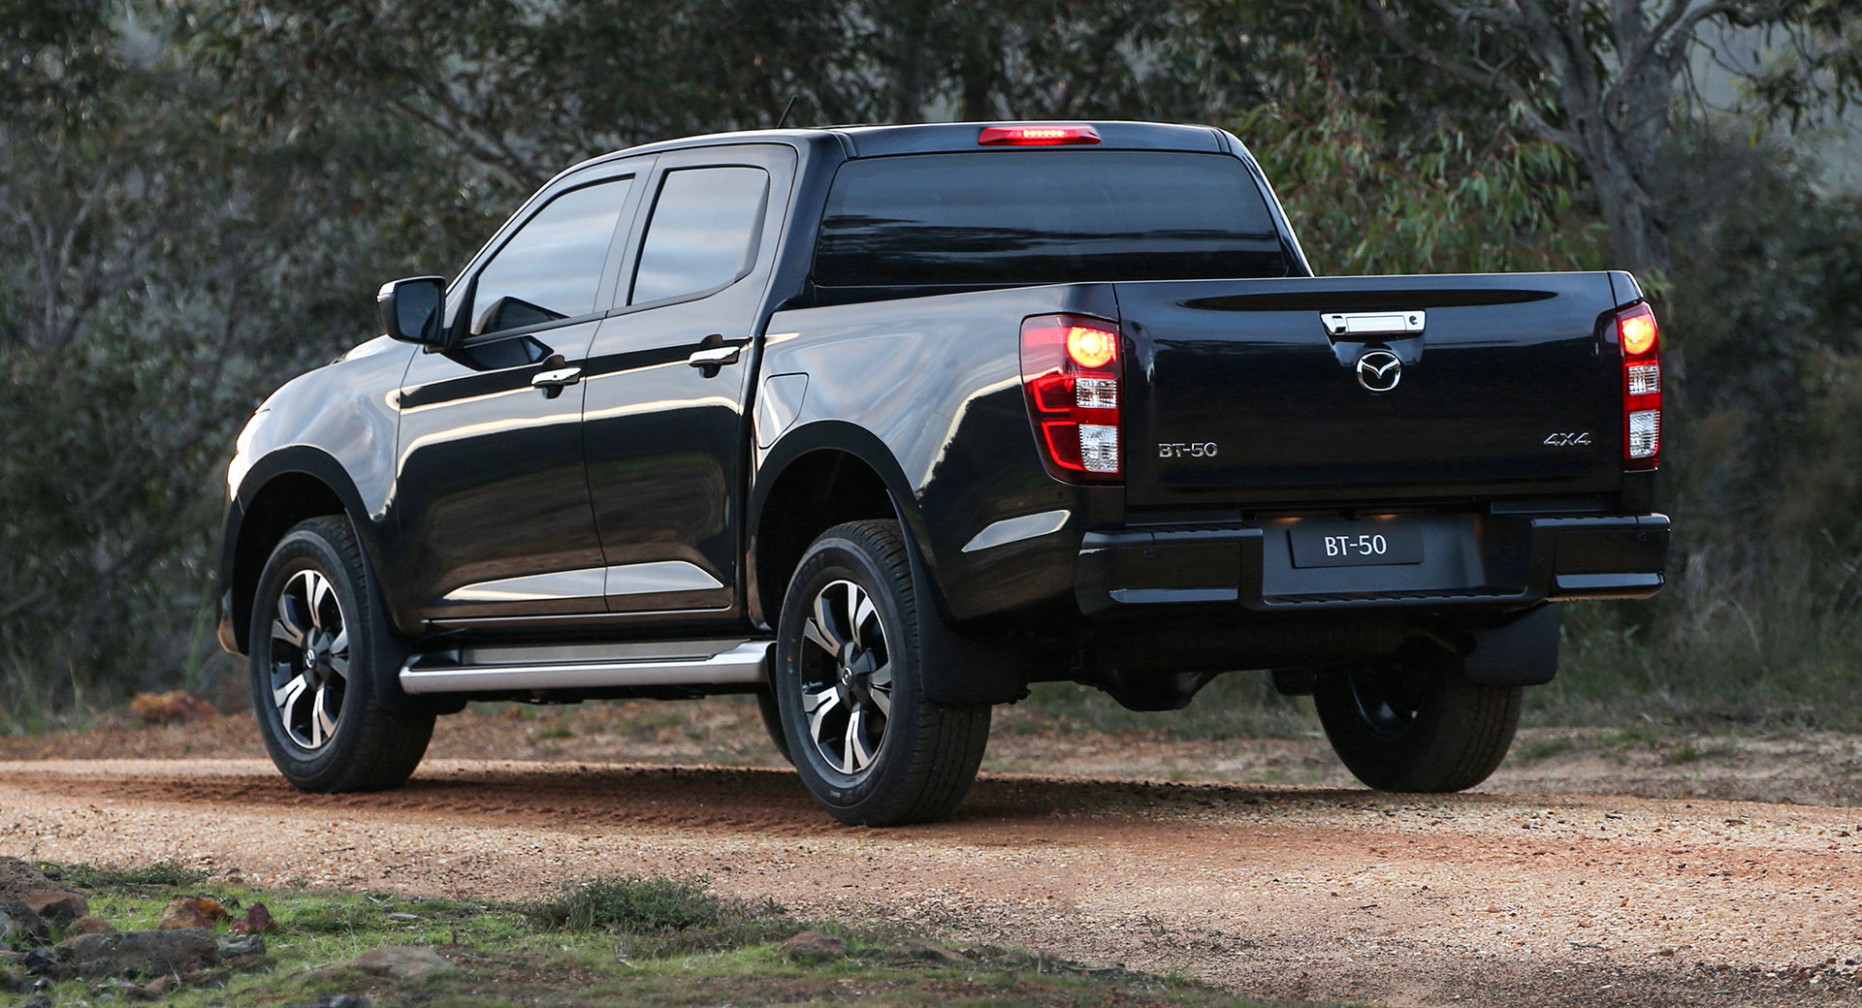 Exterior and Interior 2022 Mazda Pickup Truck